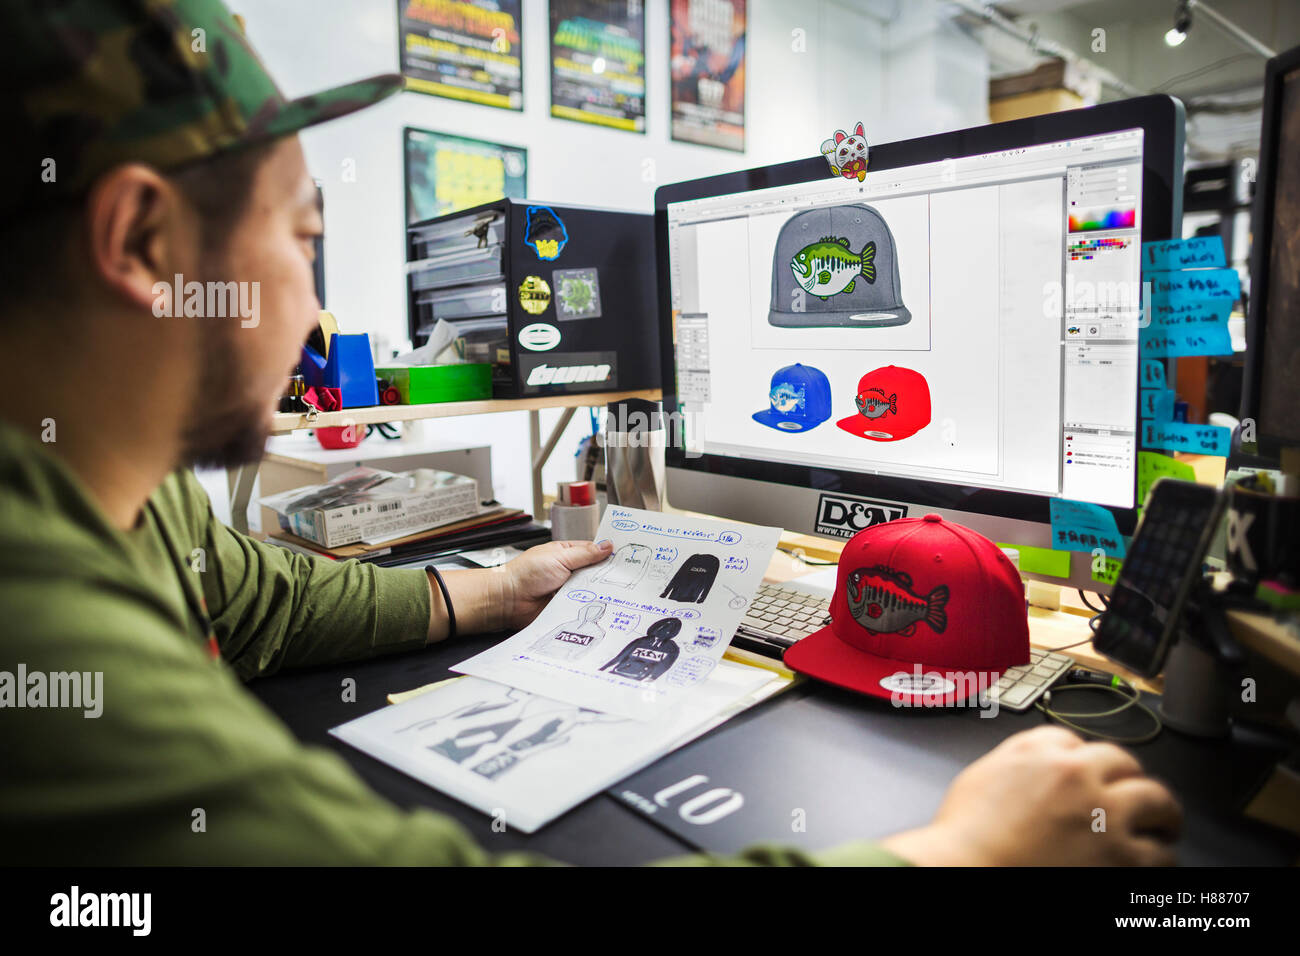 A man, a designer working on screen creating designs for baseball caps. - Stock Image